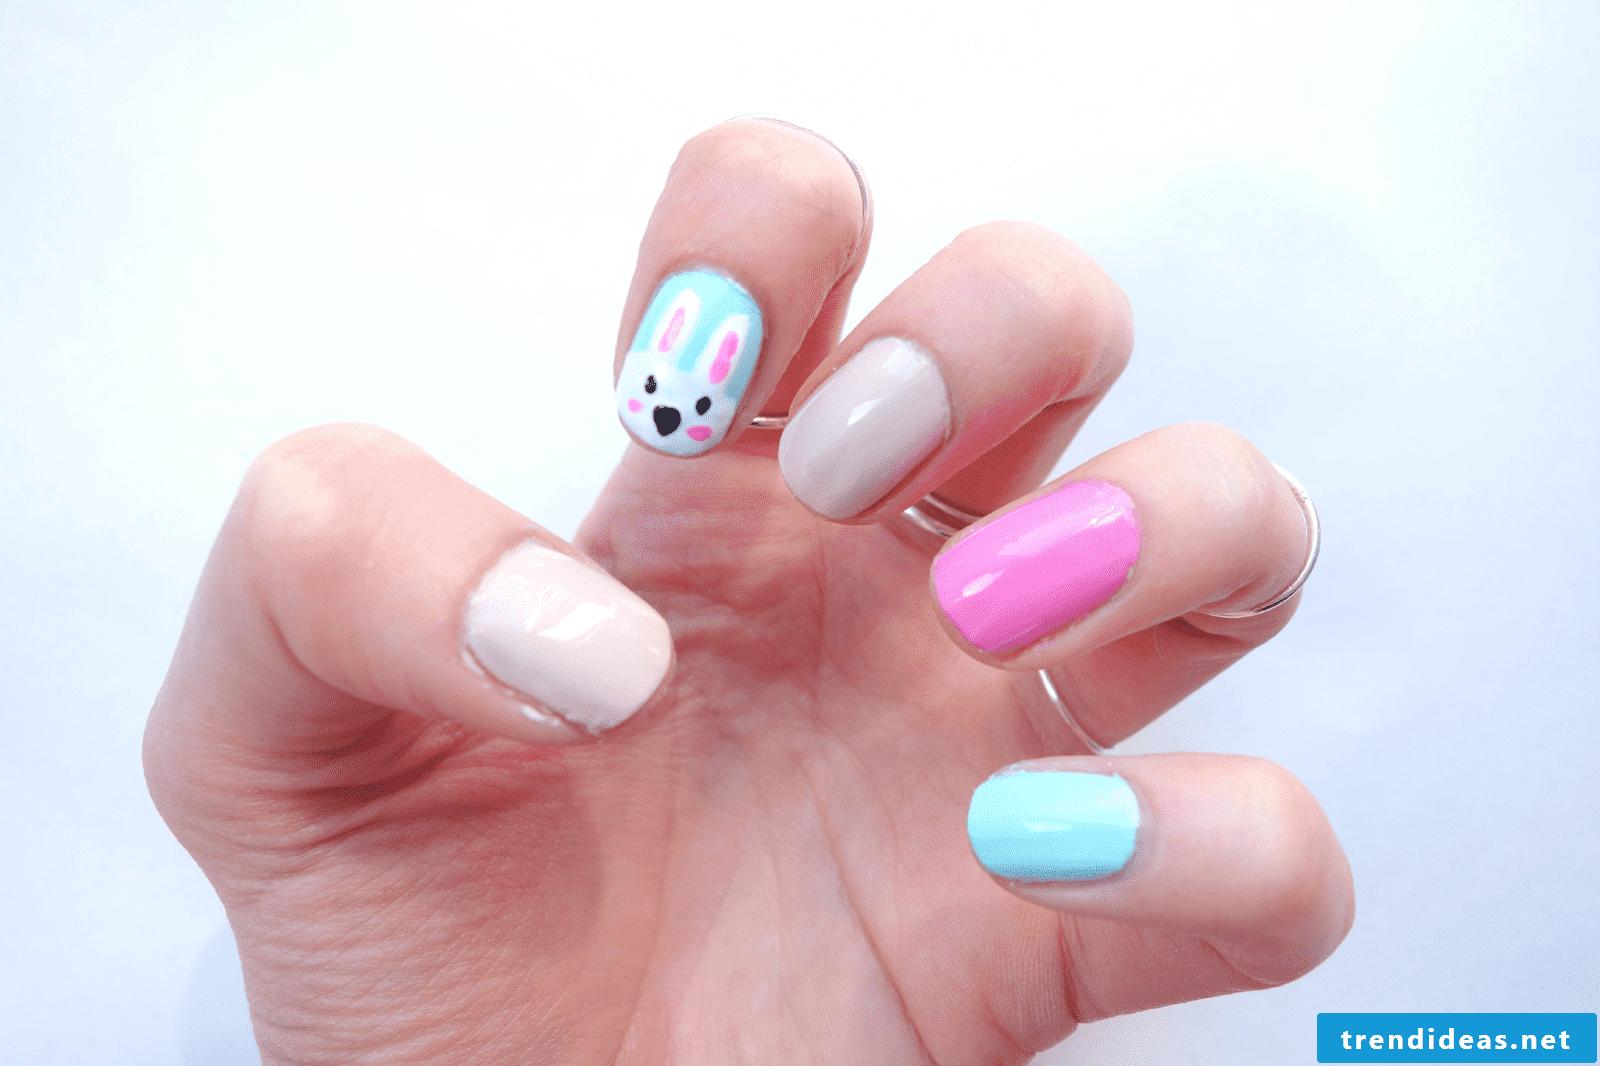 The Best Nail Design For Easter 2018 23 Great Ideas Best Trend Ideas